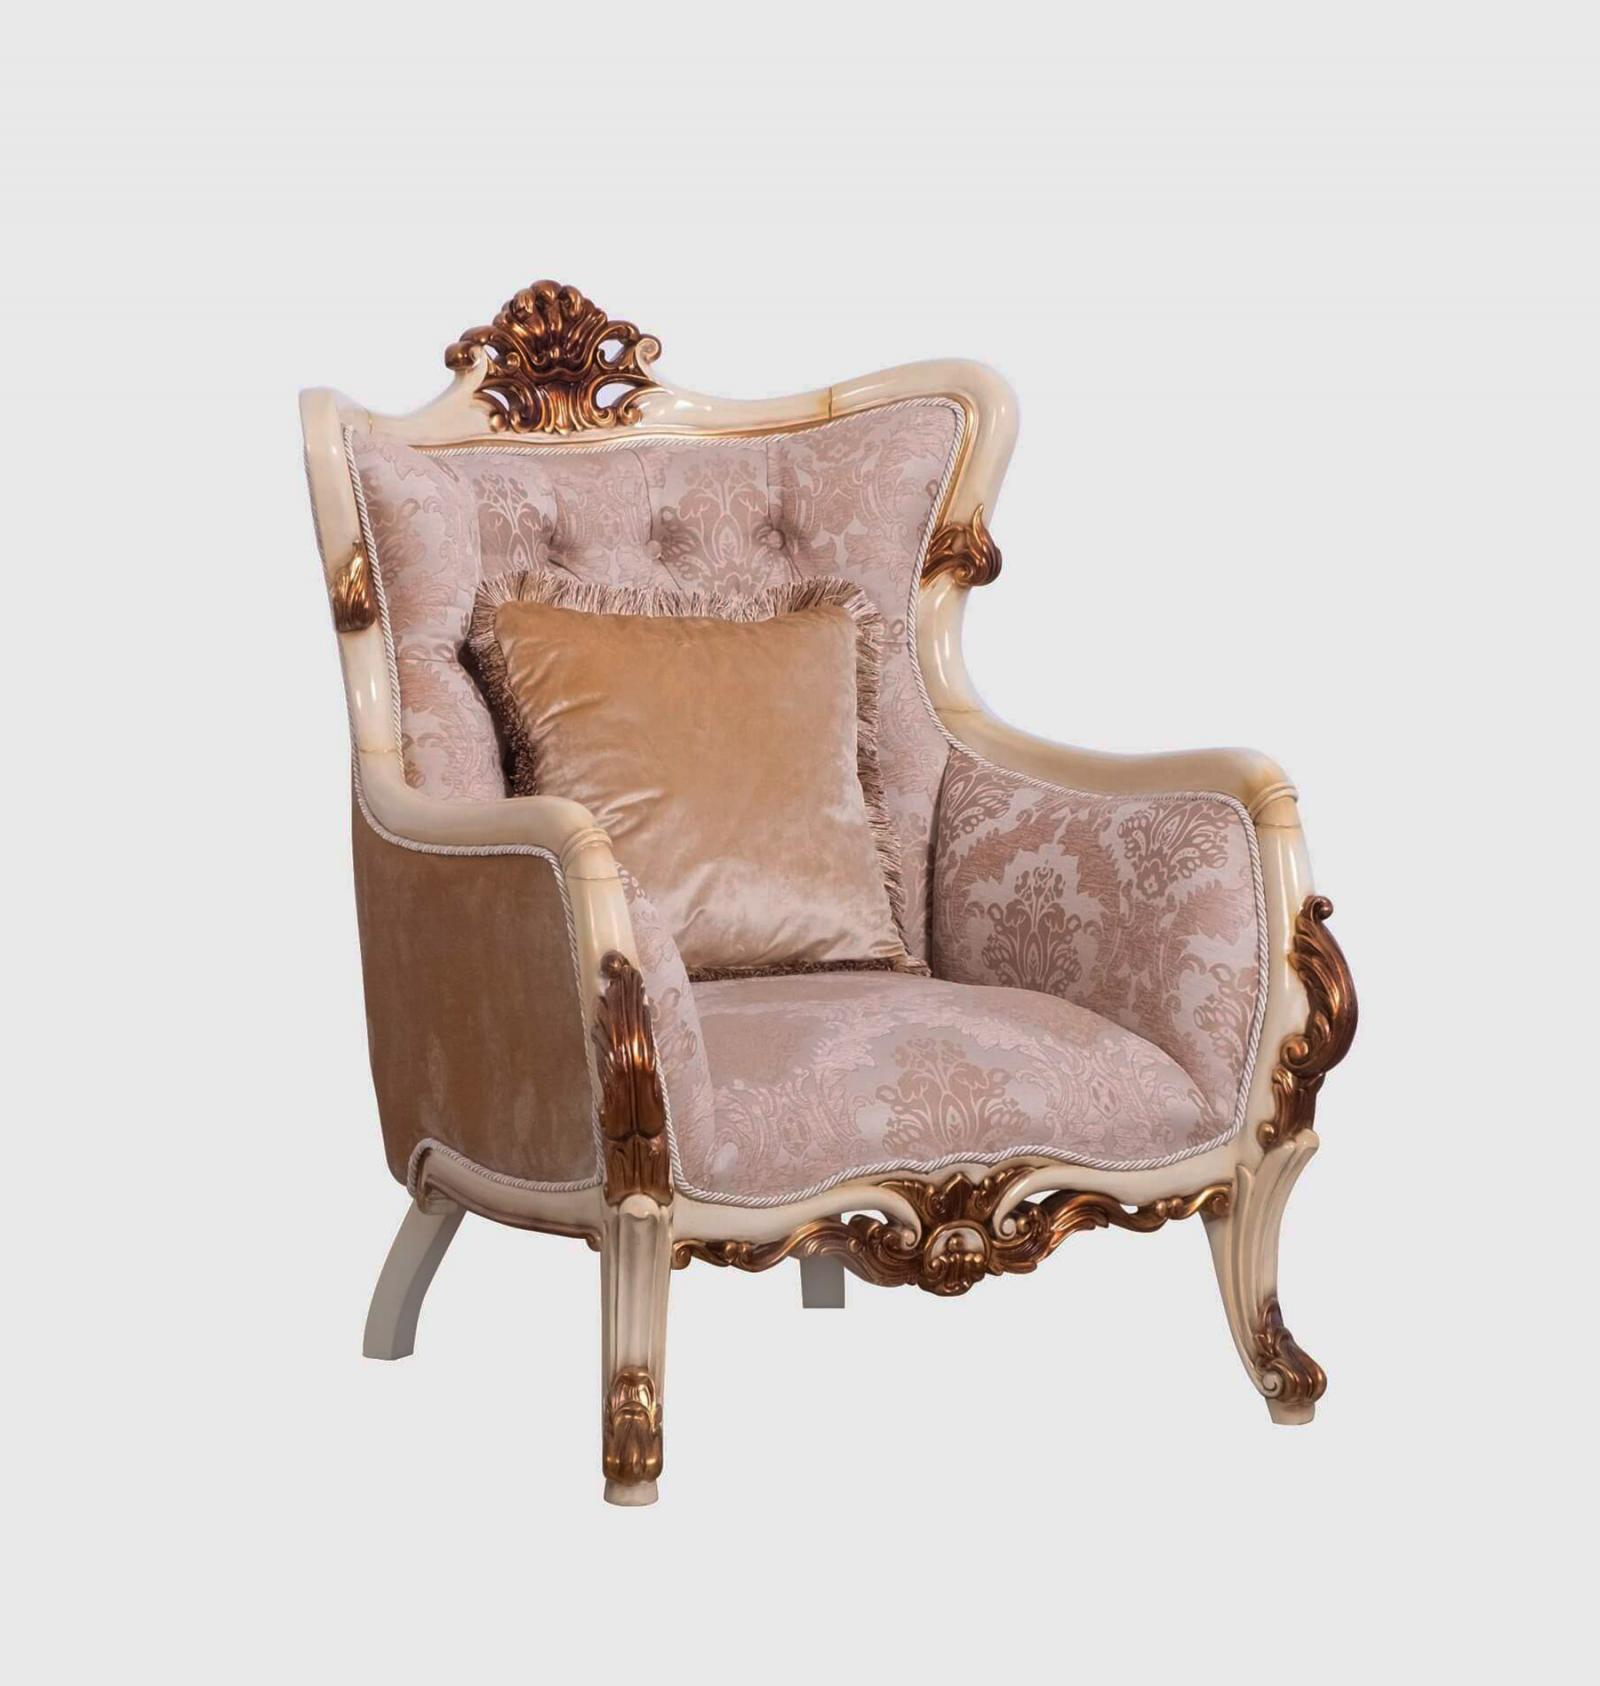 Classic  Traditional Gold  Antique   Beige Wood  Solid Hardwood and Fabric Arm Chair EUROPEAN FURNITURE 47075-C